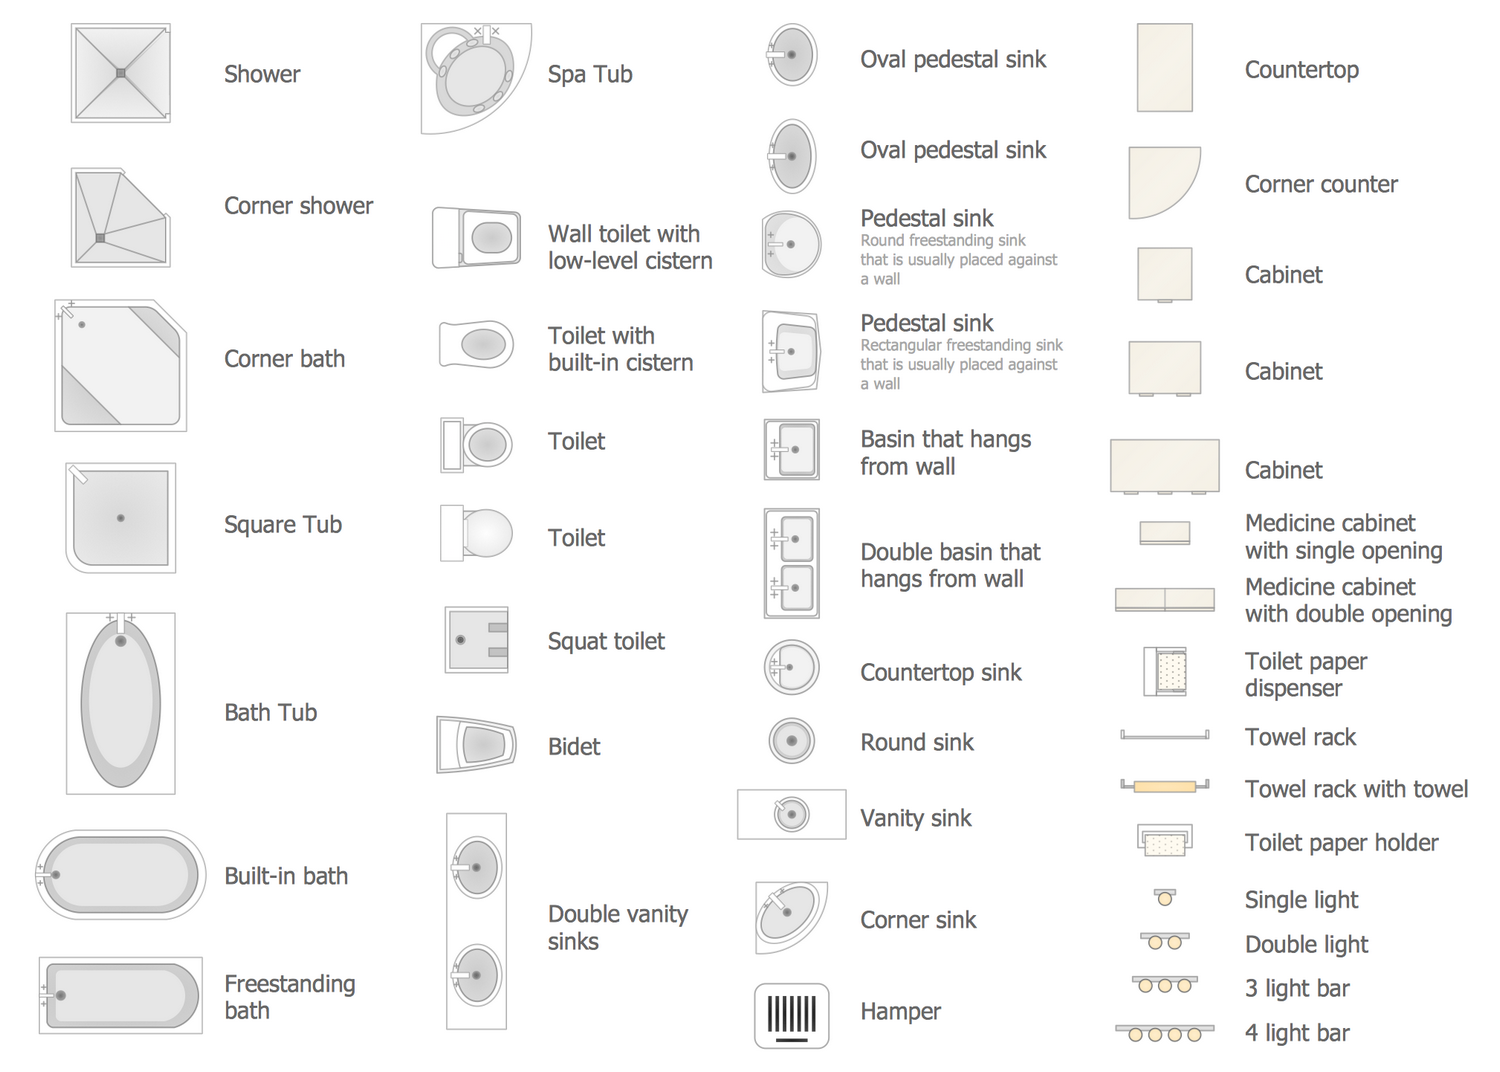 Office Layout Plans Solution Conceptdraw Com